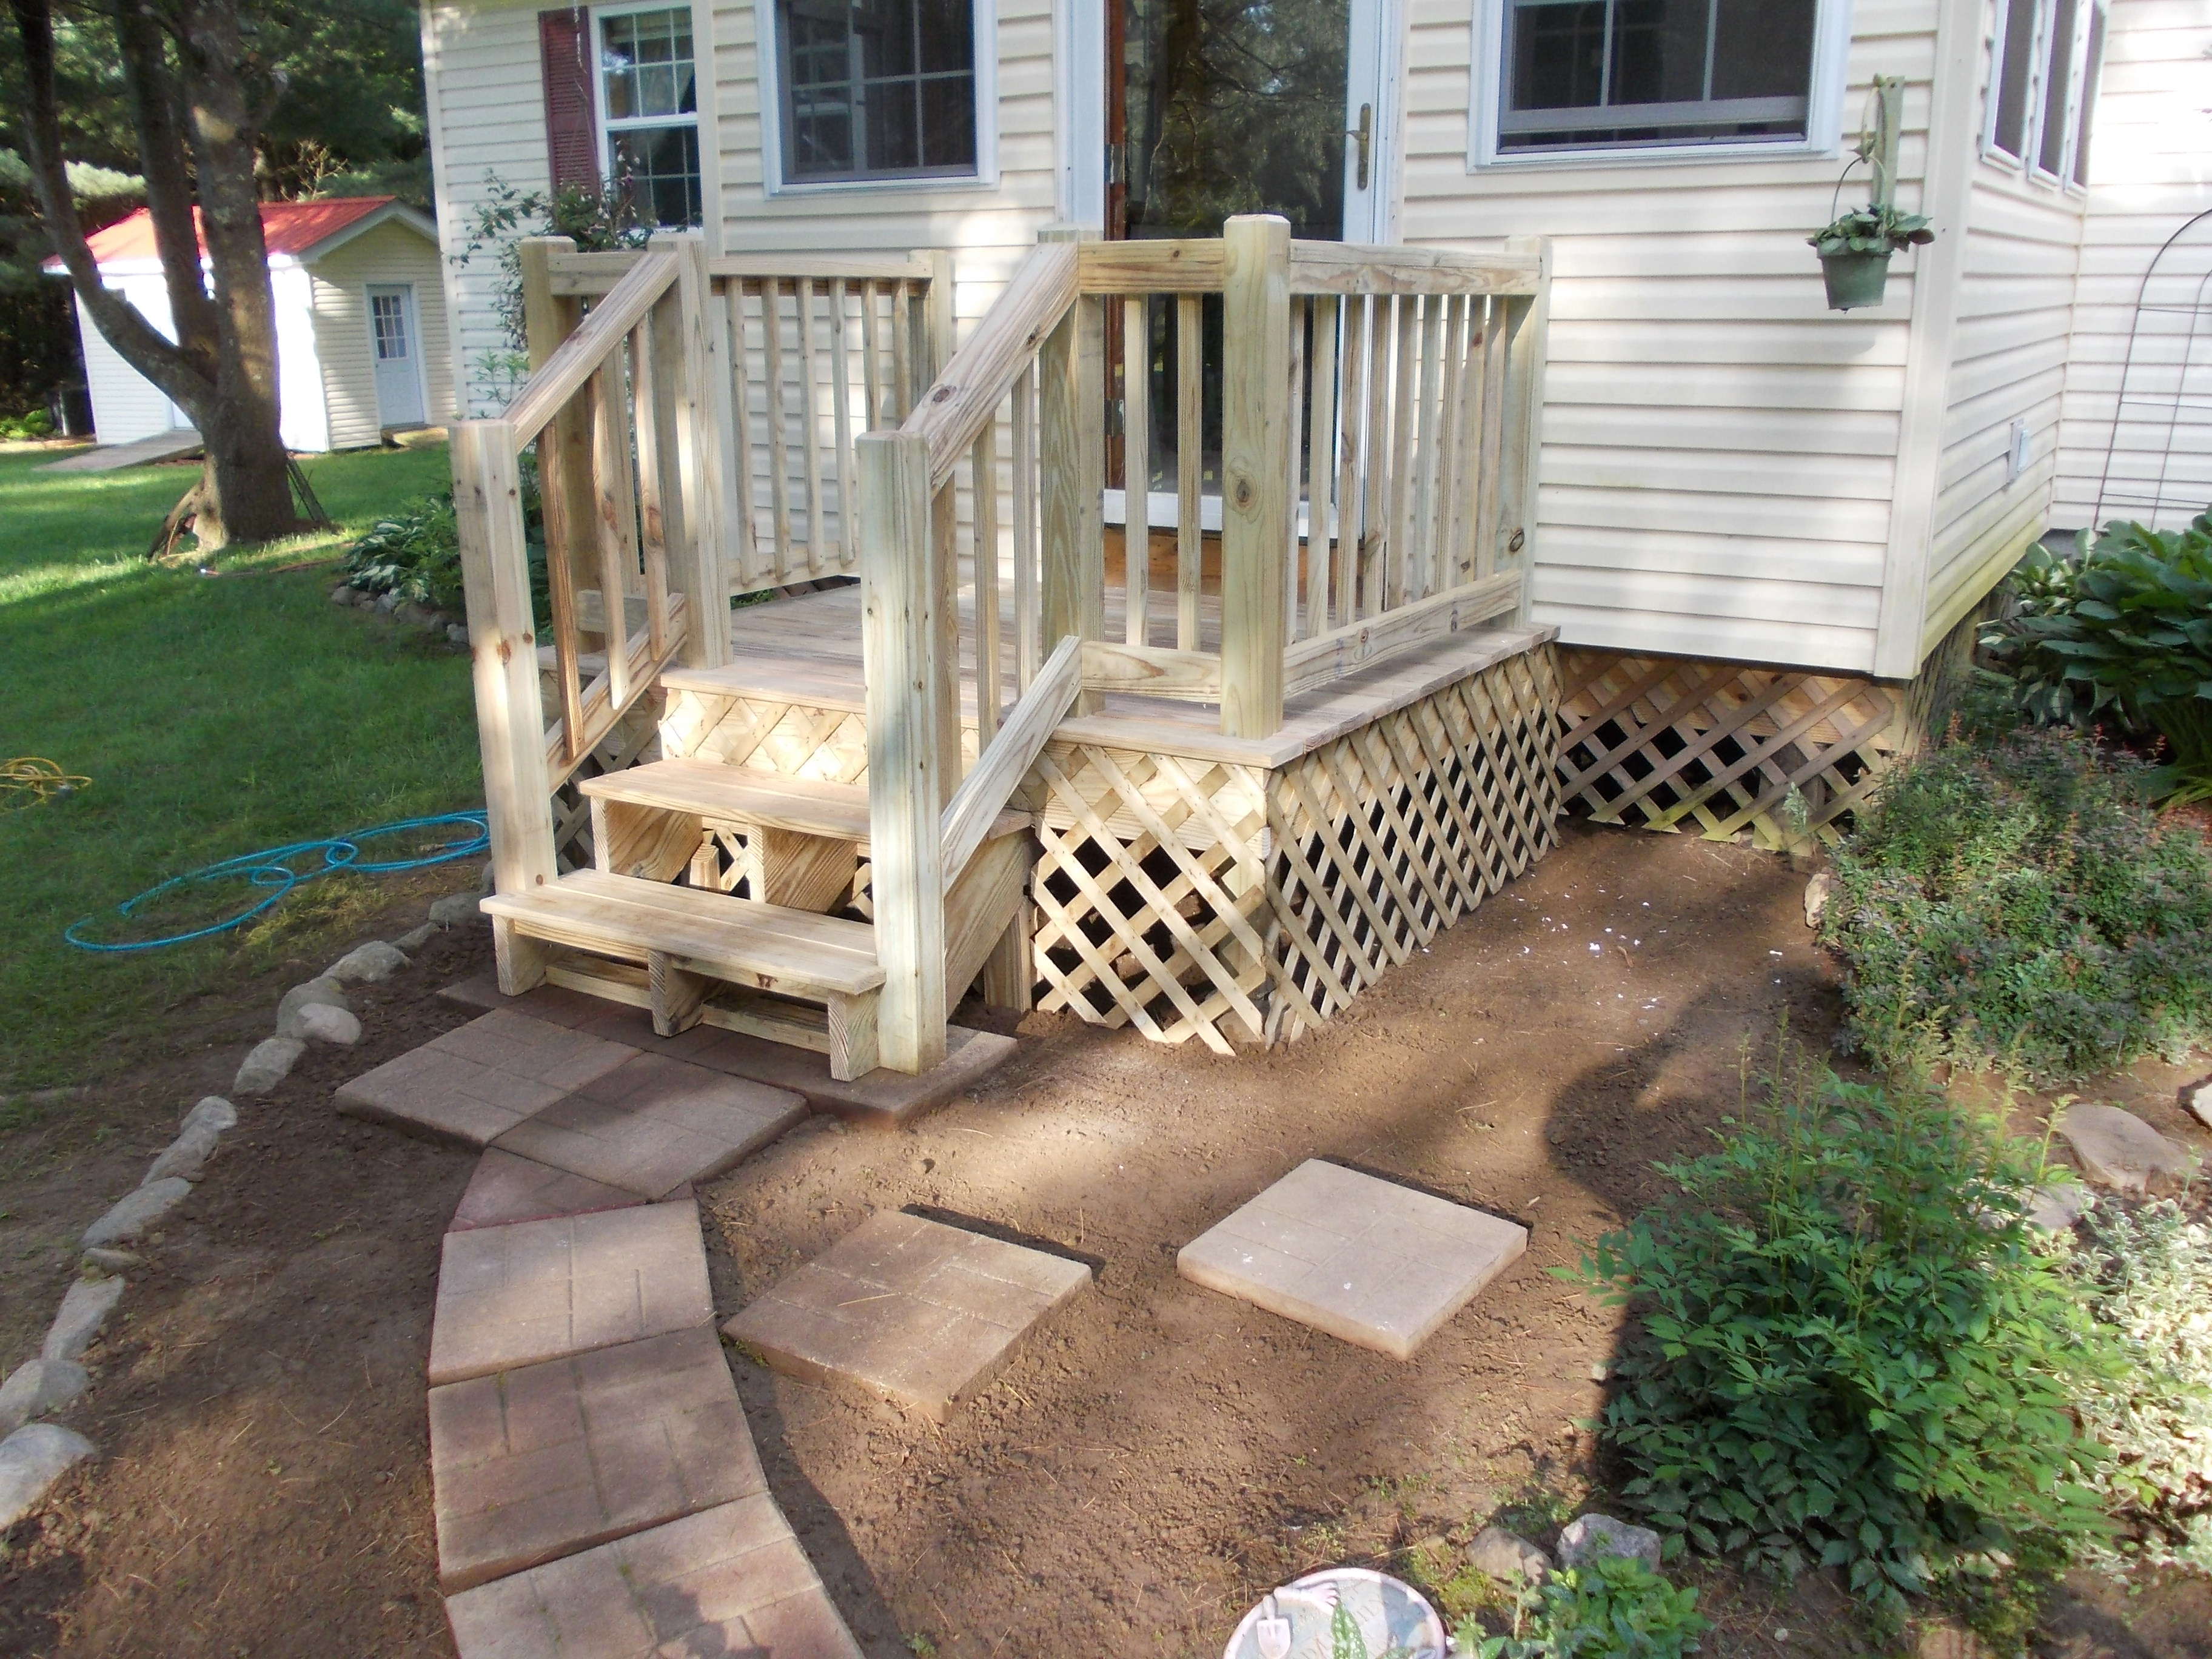 Outdoor Living | Patriot Construction of Upstate New York ... on Patriot Outdoor Living id=61119